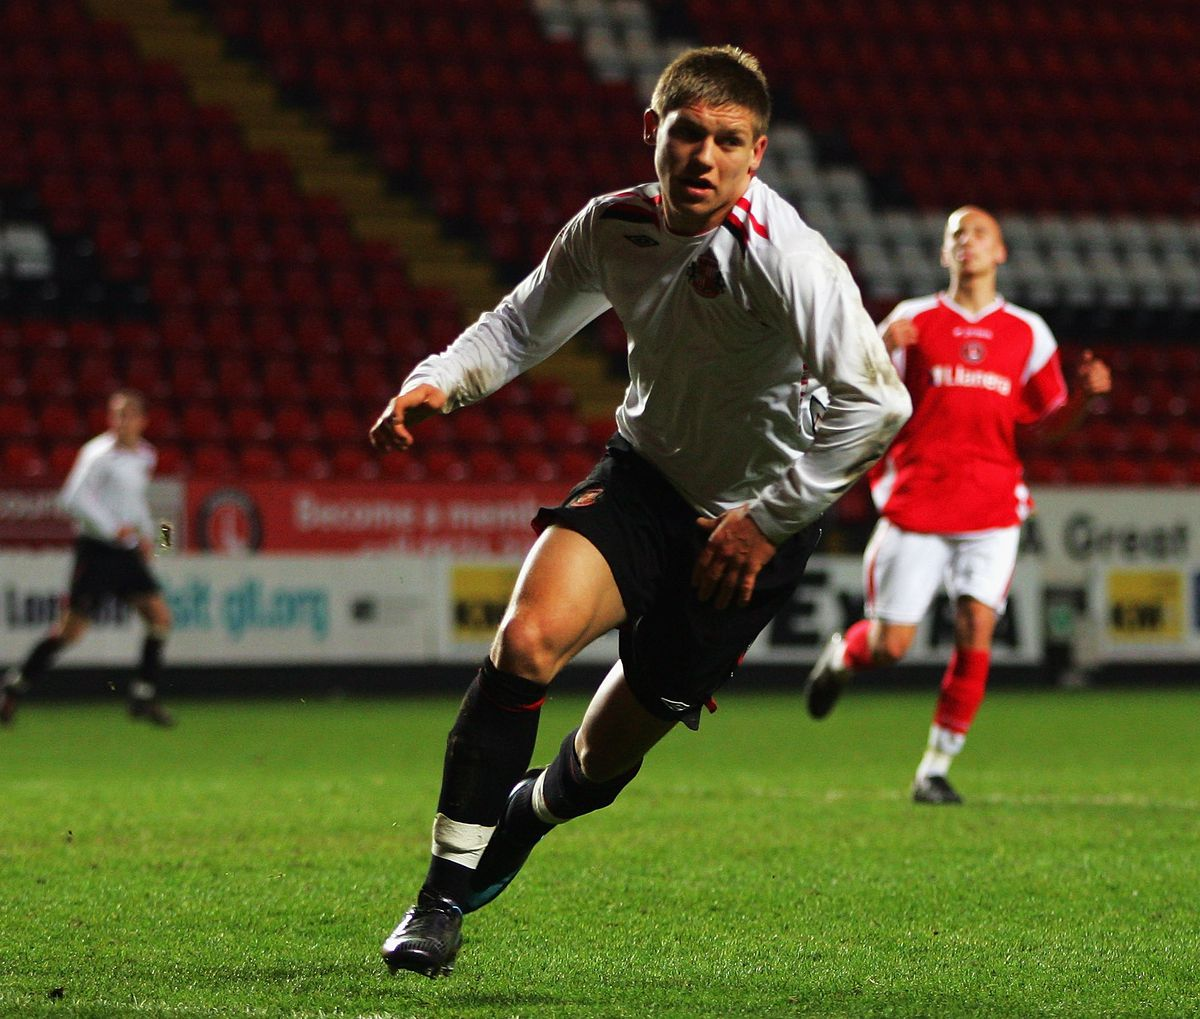 Charlton Athletic v Sunderland - FA Youth Cup